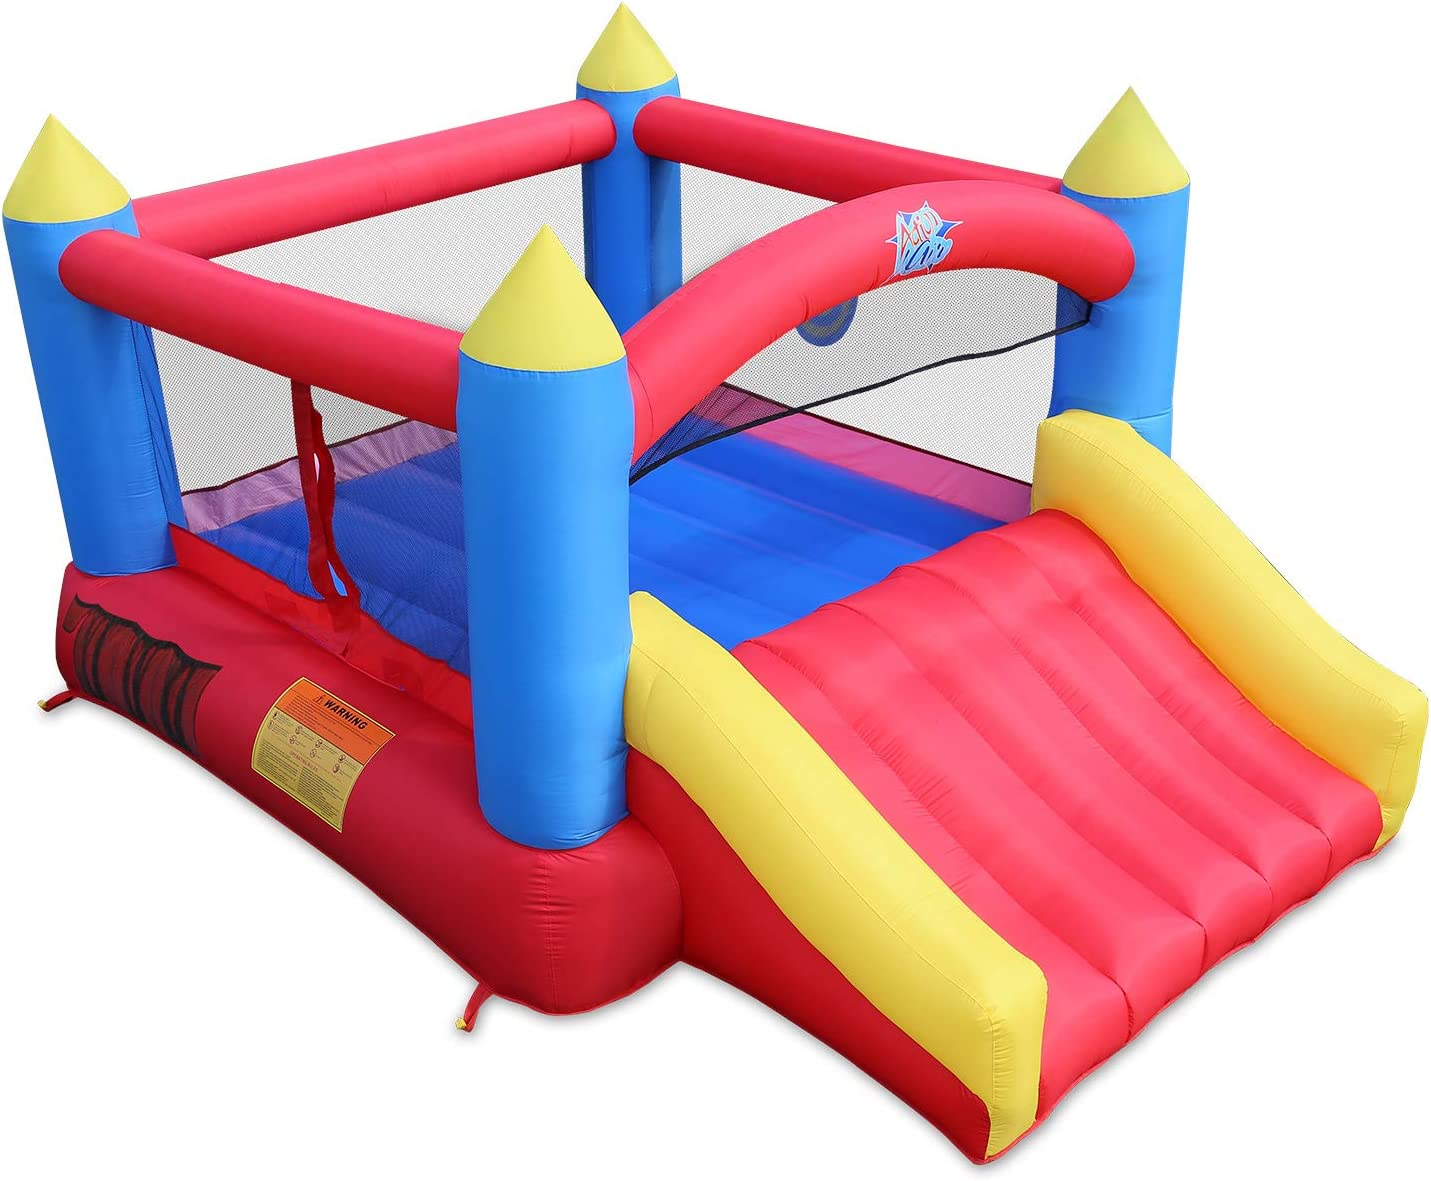 Amazon.com: ACTION AIR [Updated Version Bounce House, Inflatable Bouncer  with Air Blower, Jumping Castle with Slide, Family Backyard Bouncy Castle,  Durable Sewn with Extra Thick Material, Idea for Kids(C-9745): Toys & Games